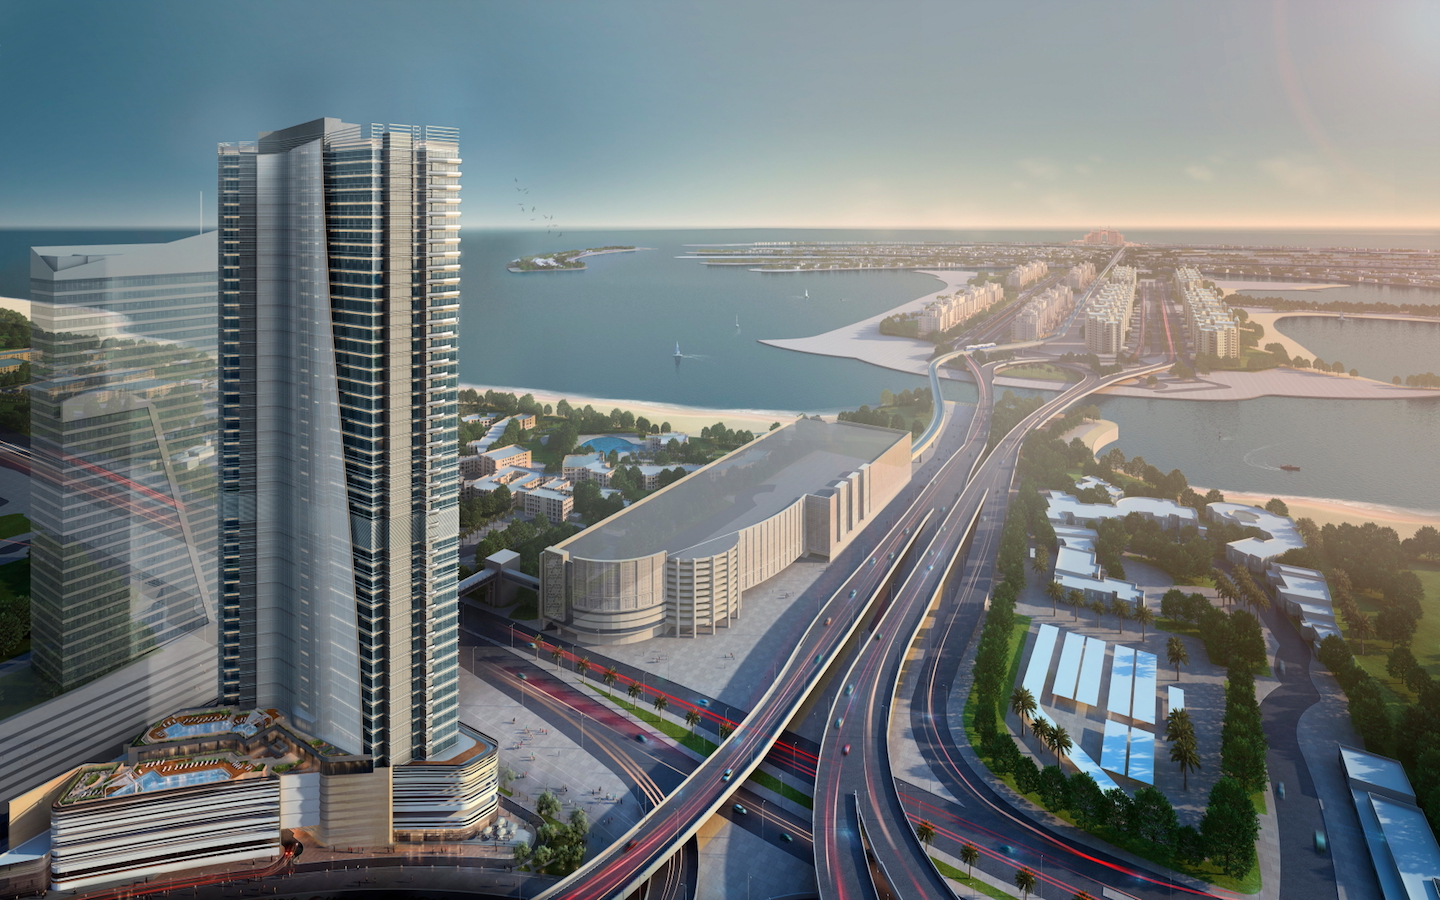 Avani Hotels new property in Dubai: UAE real estate news